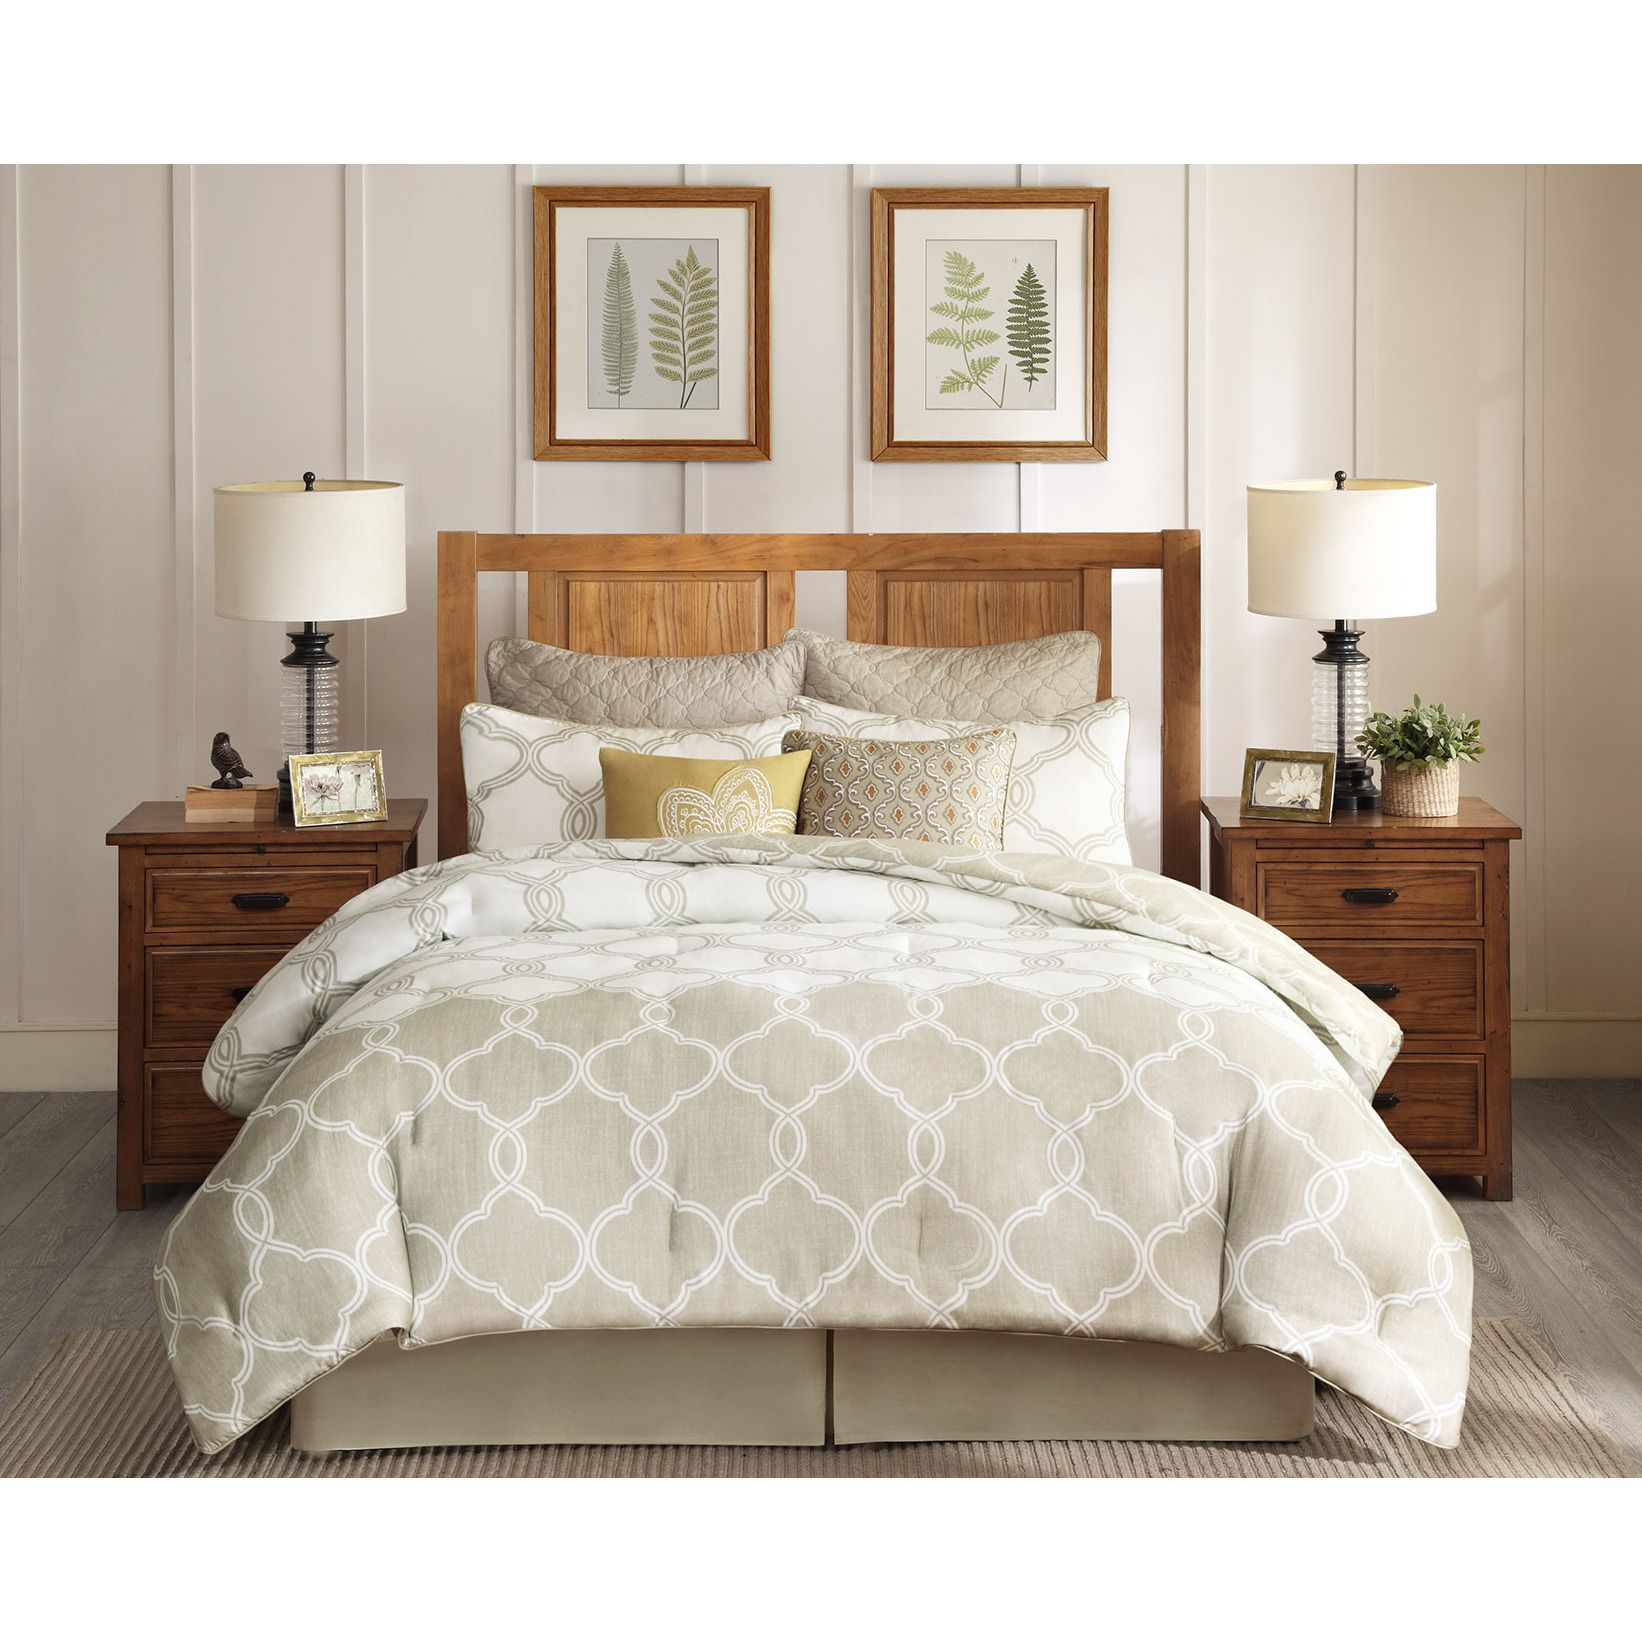 The Harbor House Gentry Comforter Set Features A Lattice Pattern That  Provides A Fresh Modern Update To Your Room. With Neutral Shades Of Tan And  Ivory, ...